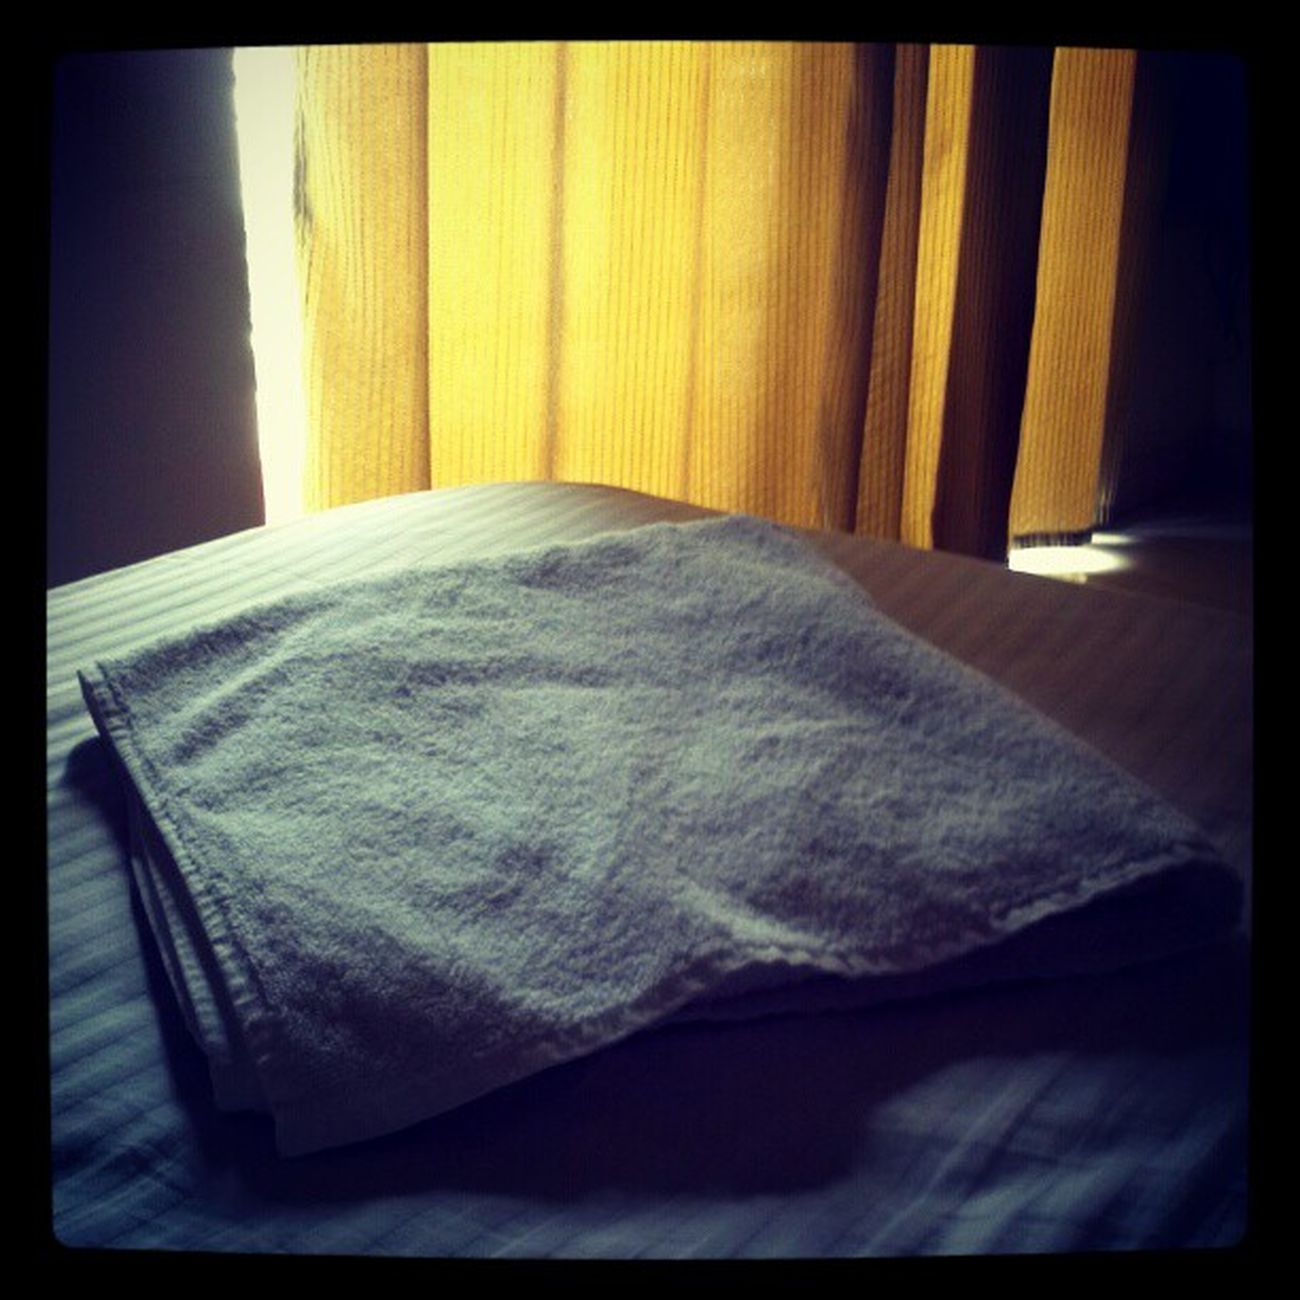 Celebrating Towelday alone in the hotel room. Happy Towelday !!